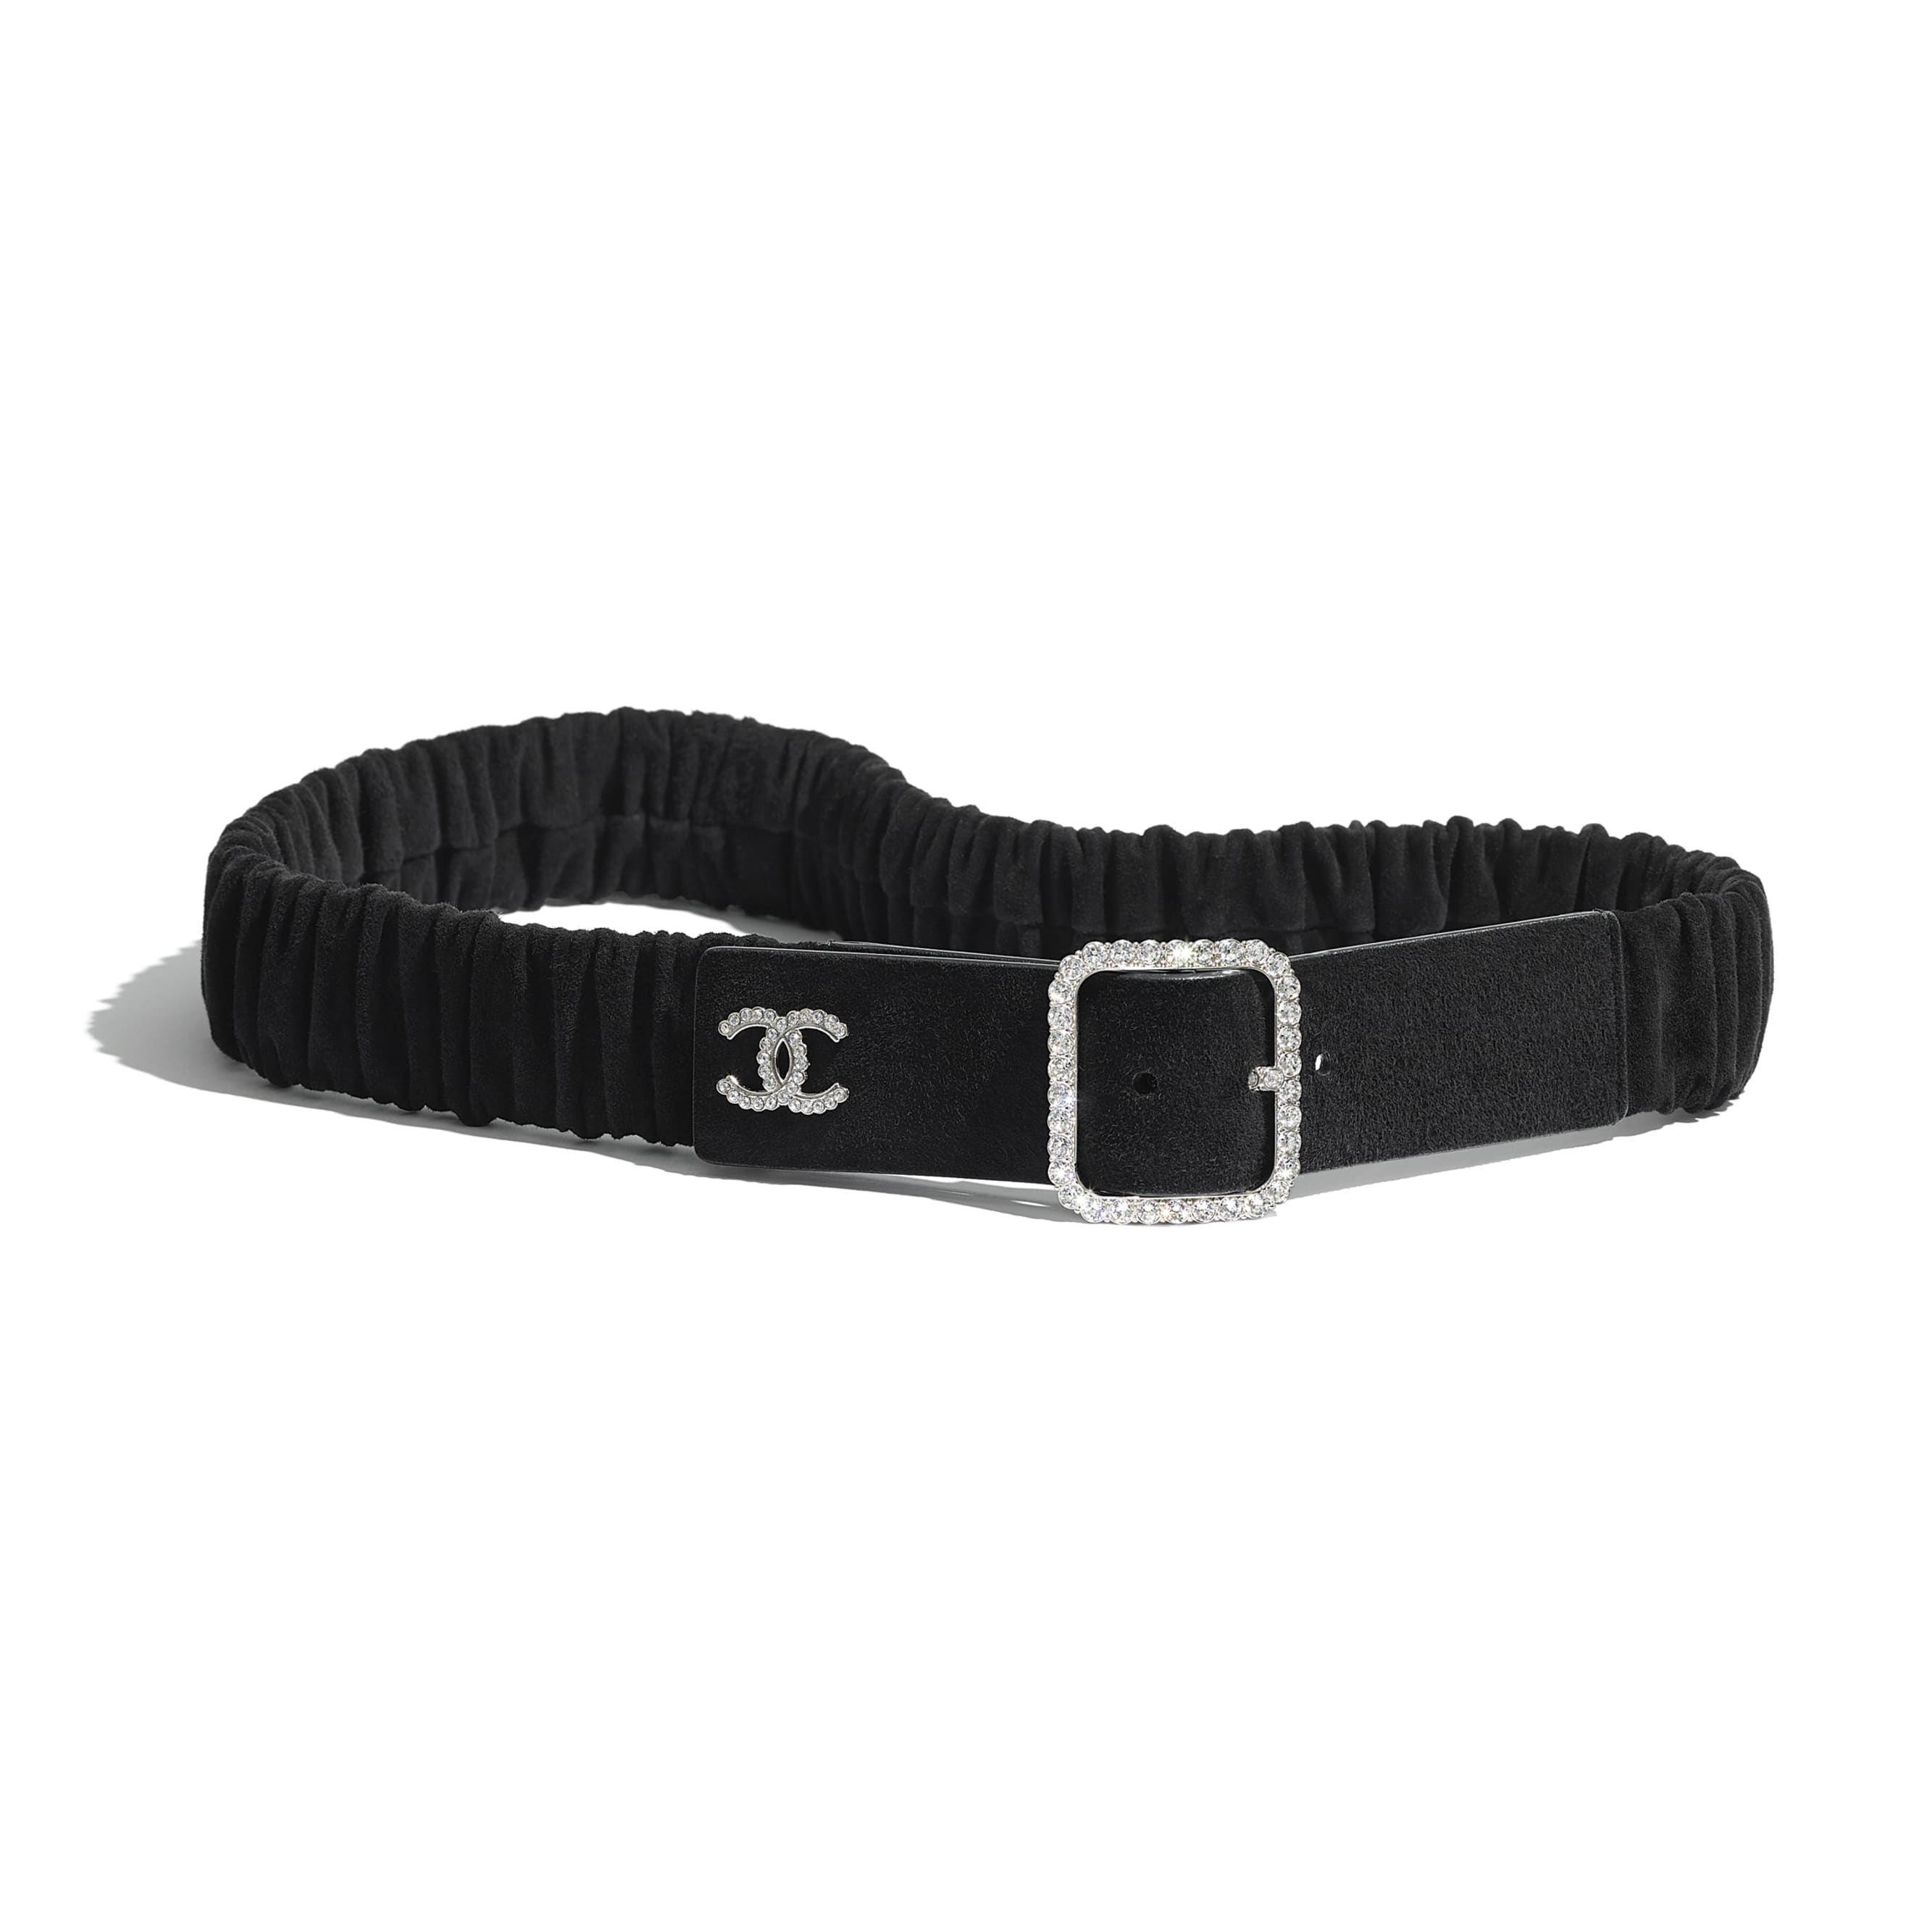 Belt - Black -  Goatskin, Silver-Tone Metal & Diamante - CHANEL - Default view - see standard sized version